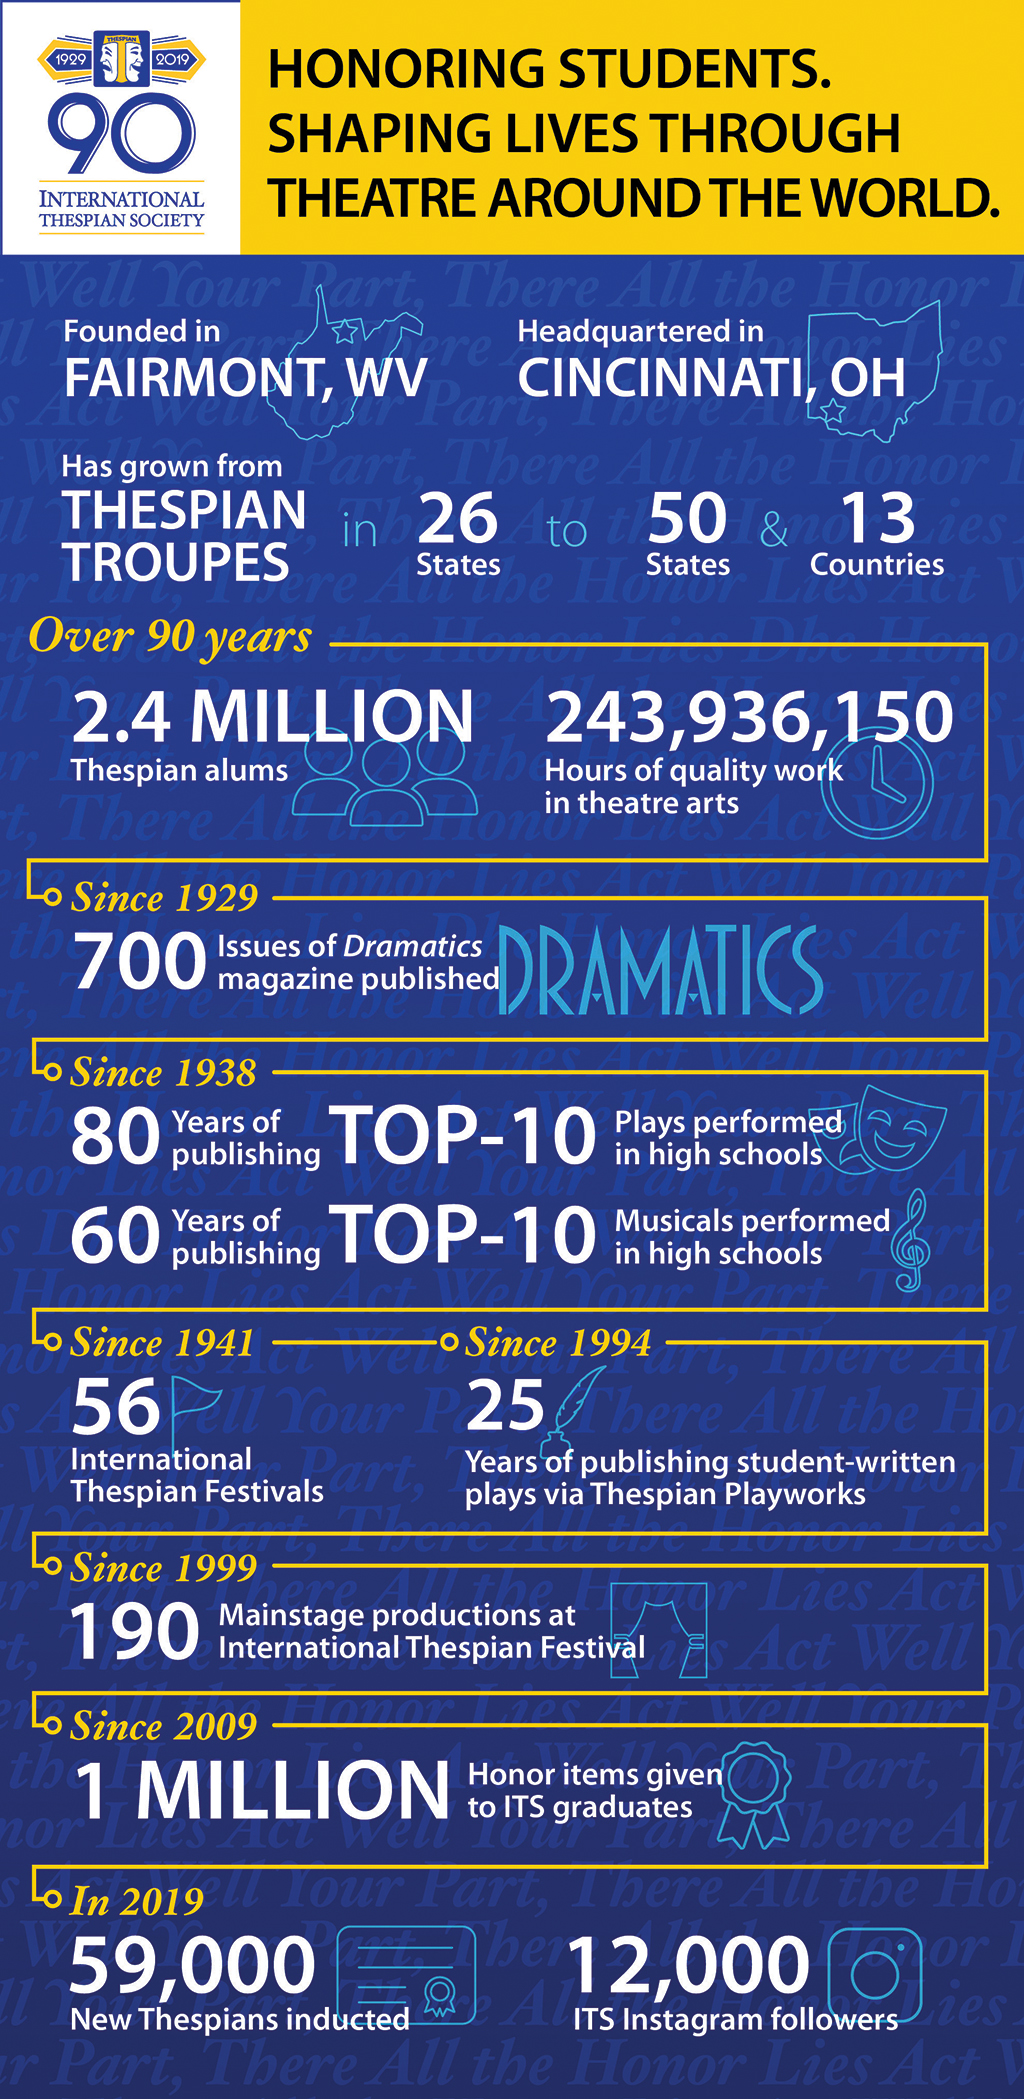 90 years of the Interntional Thespian Society at a glance